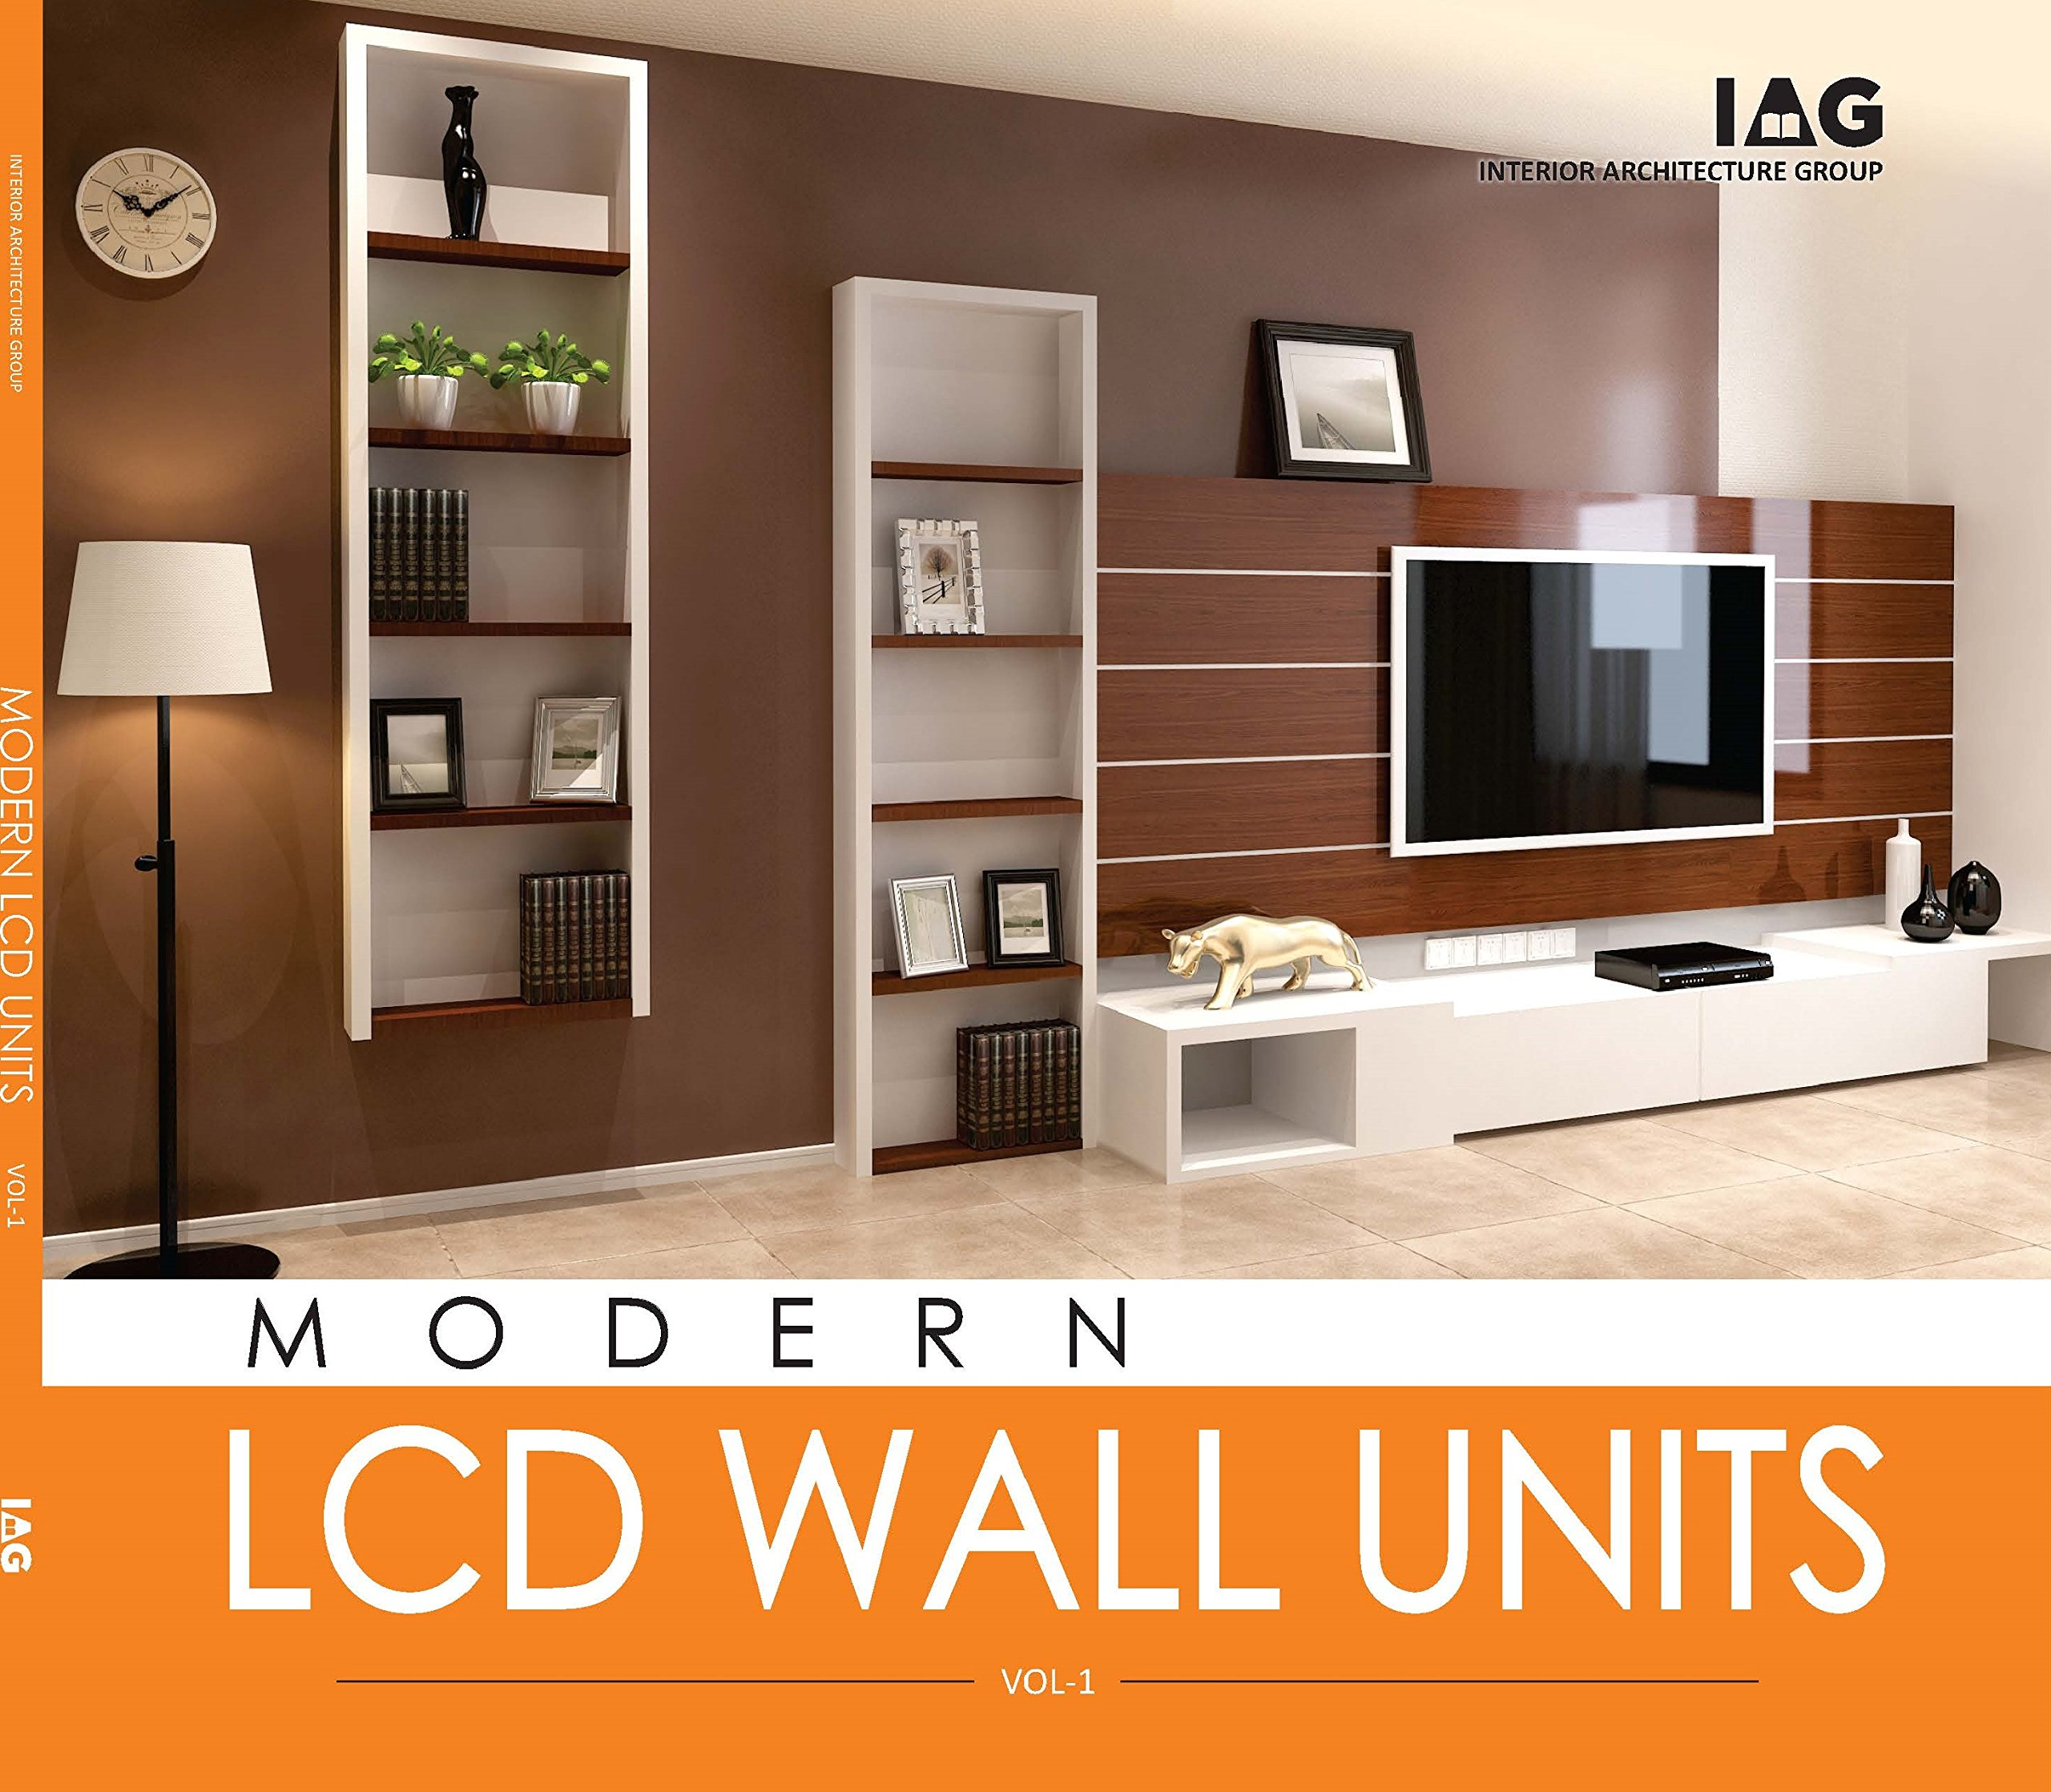 Buy Modern Lcd Wall Units Vol 1 Book Online At Low Prices In India